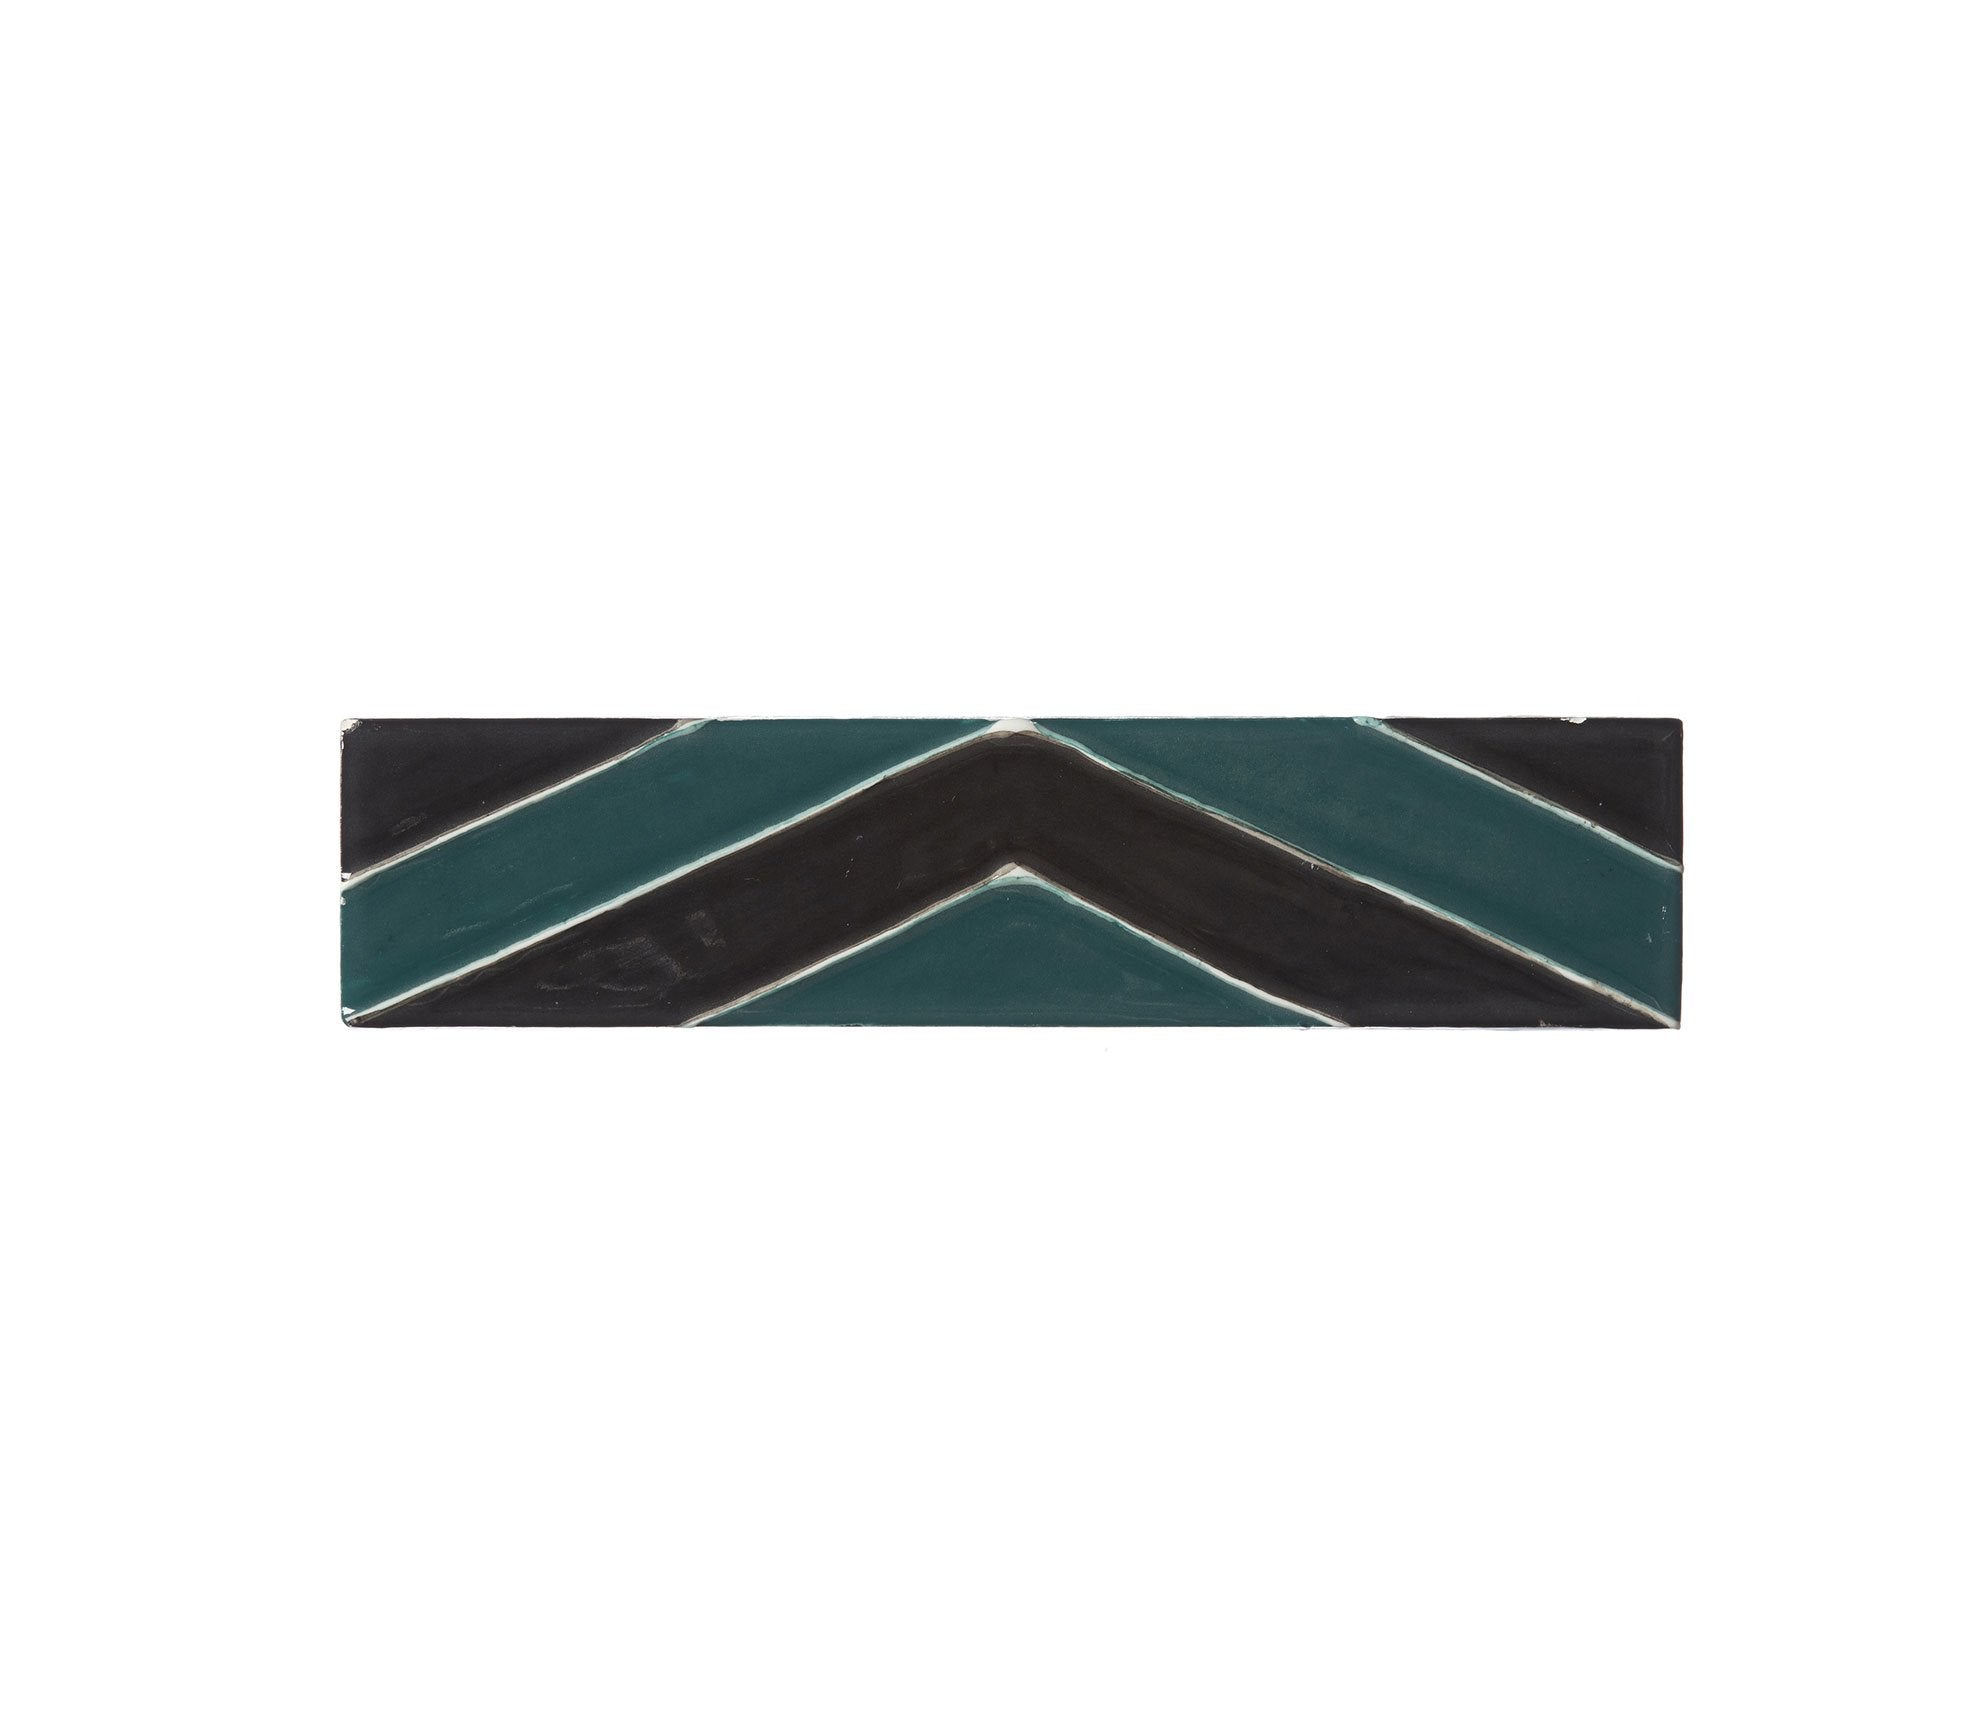 Hanley Tube Lined Decorative Tiles Product Image 13